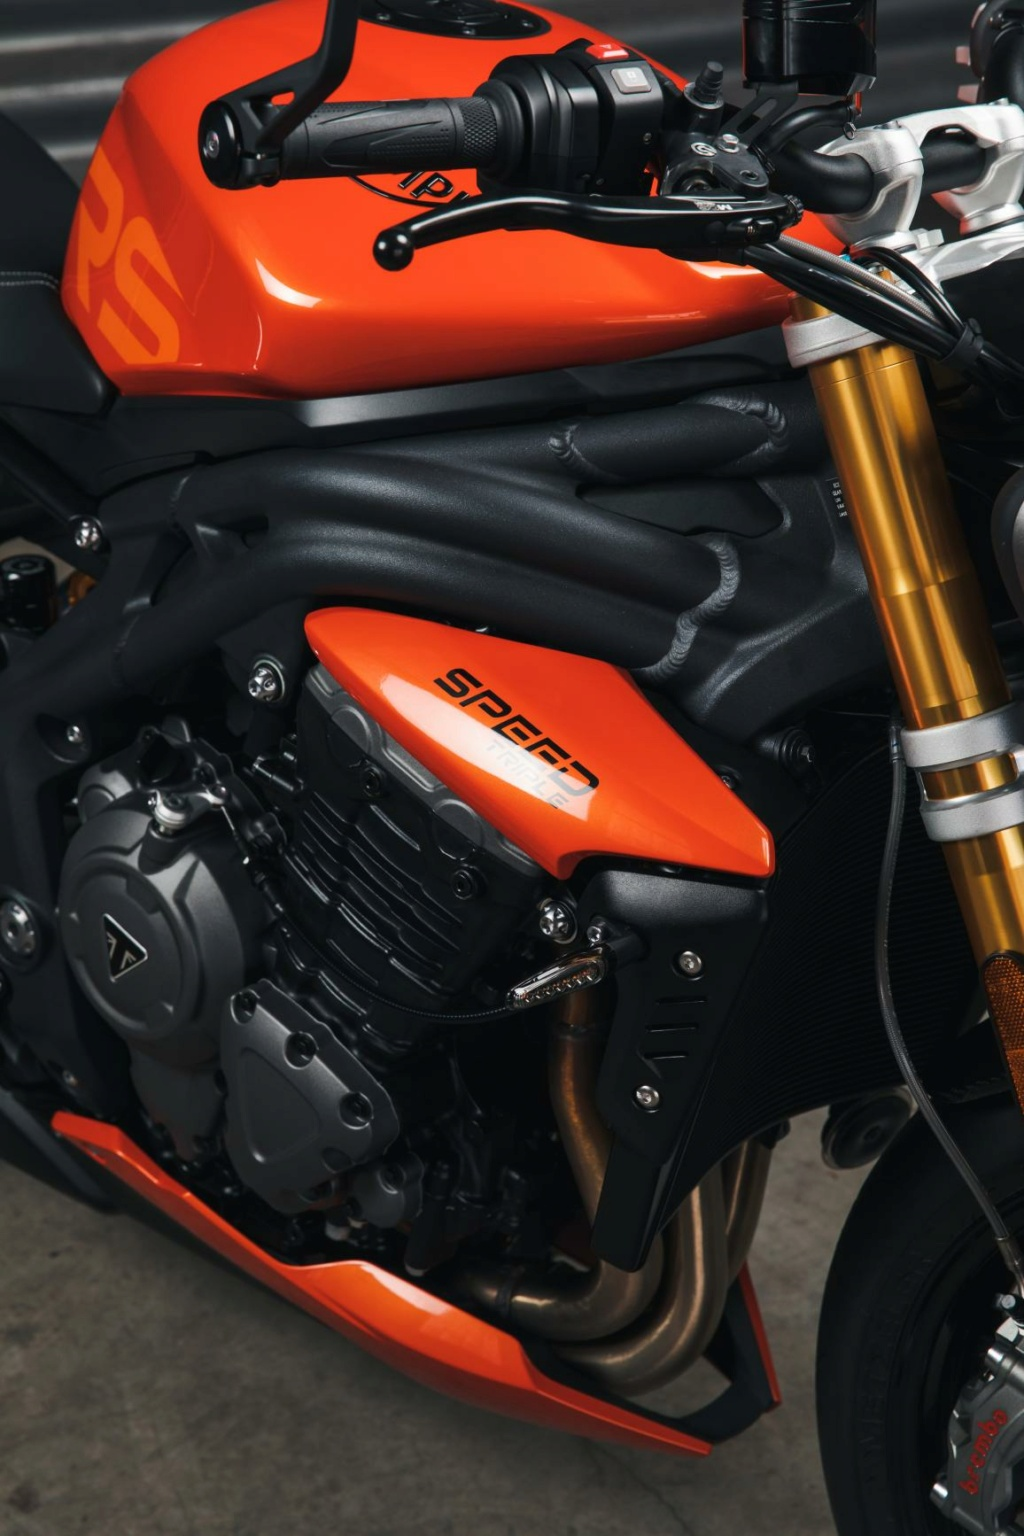 SPEED TRIPLE 1200 RS - Page 2 Photo-15